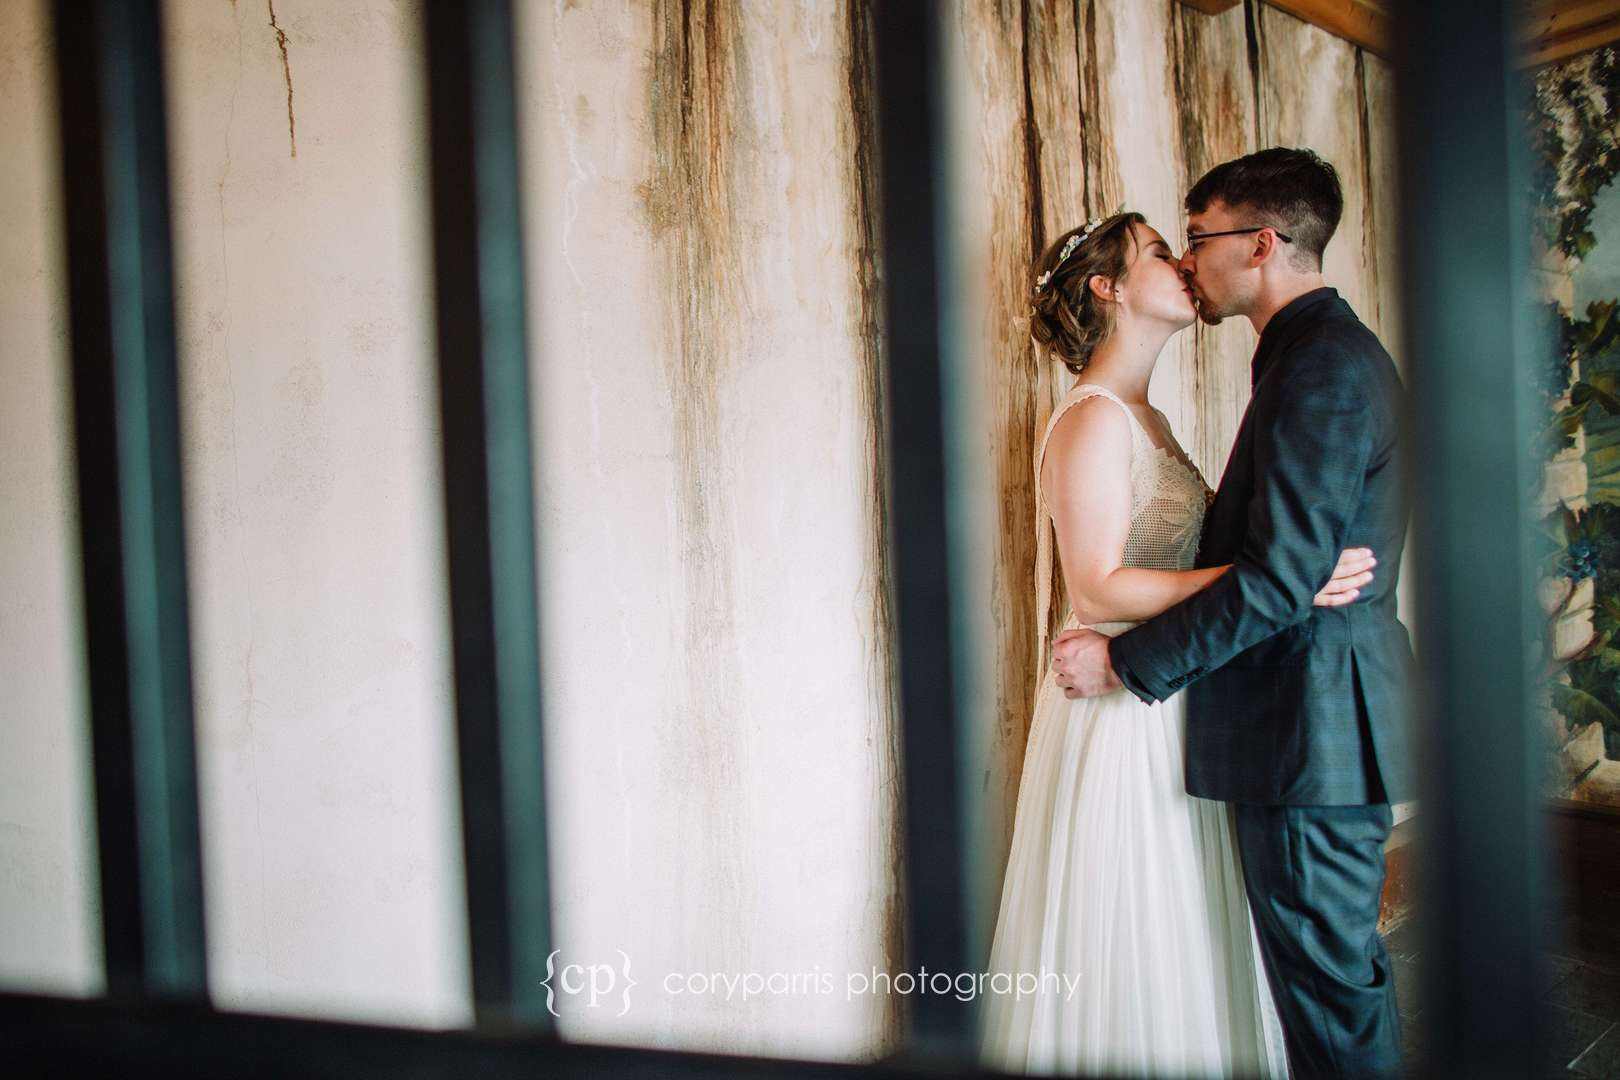 Wedding portrait photography at DeLille Cellars Chateau in Woodinville